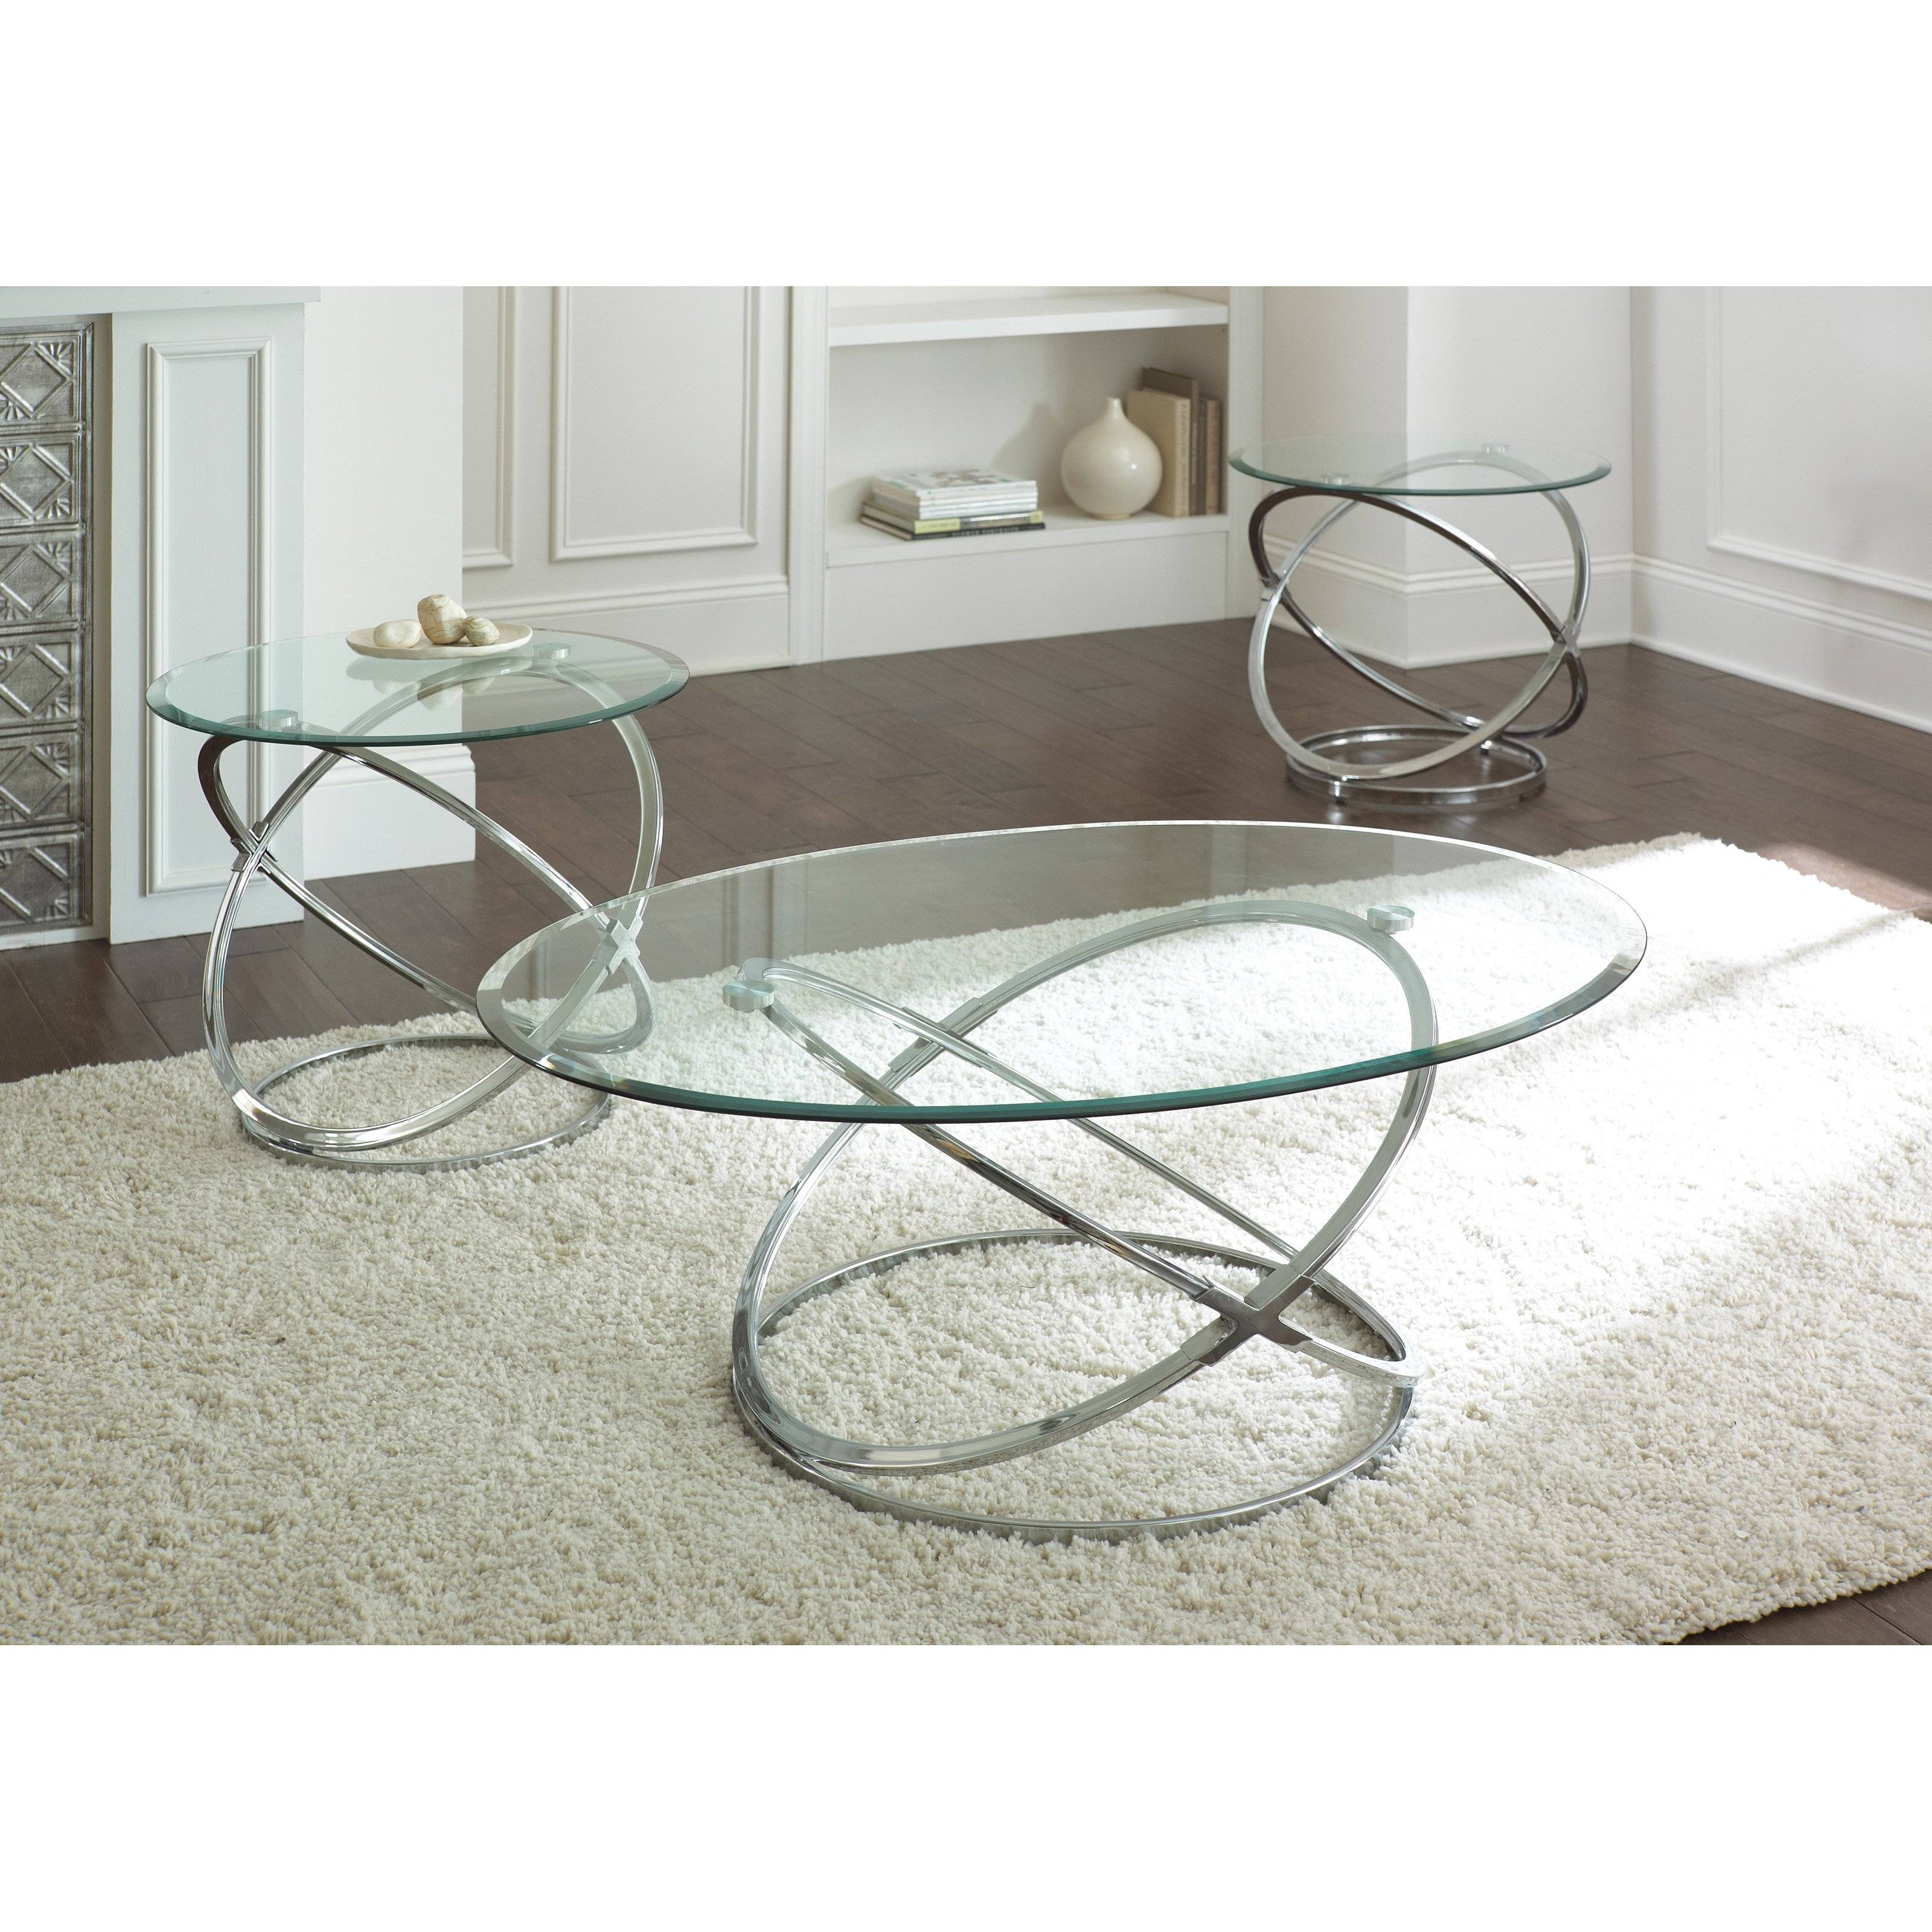 Coffee Table. Attractive Oval Glass Coffee Table Designs with regard to Glass Steel Coffee Tables (Image 6 of 30)